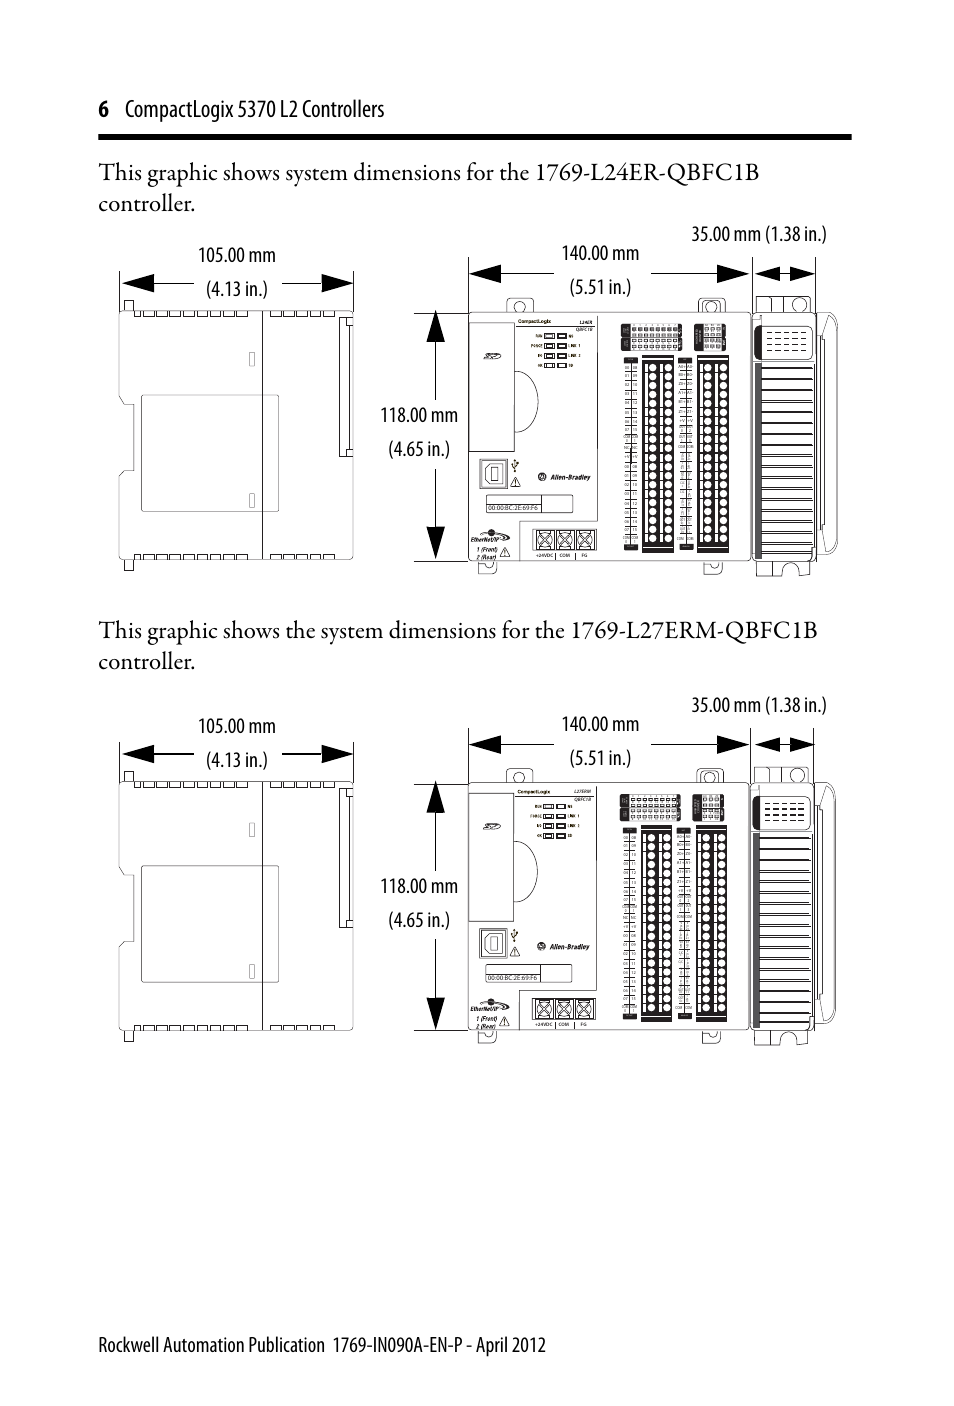 Dc Input 24vdc Sink Source 24vdc Source Output Dc Dc In Hsc Dc Out Analog Rockwell Automation 1769 L24er Qb1b Qbfc1b Qbfc1b Compactlogix 5370 L2 Controllers Installation Instructions User Manual Page 6 16 Original Mode